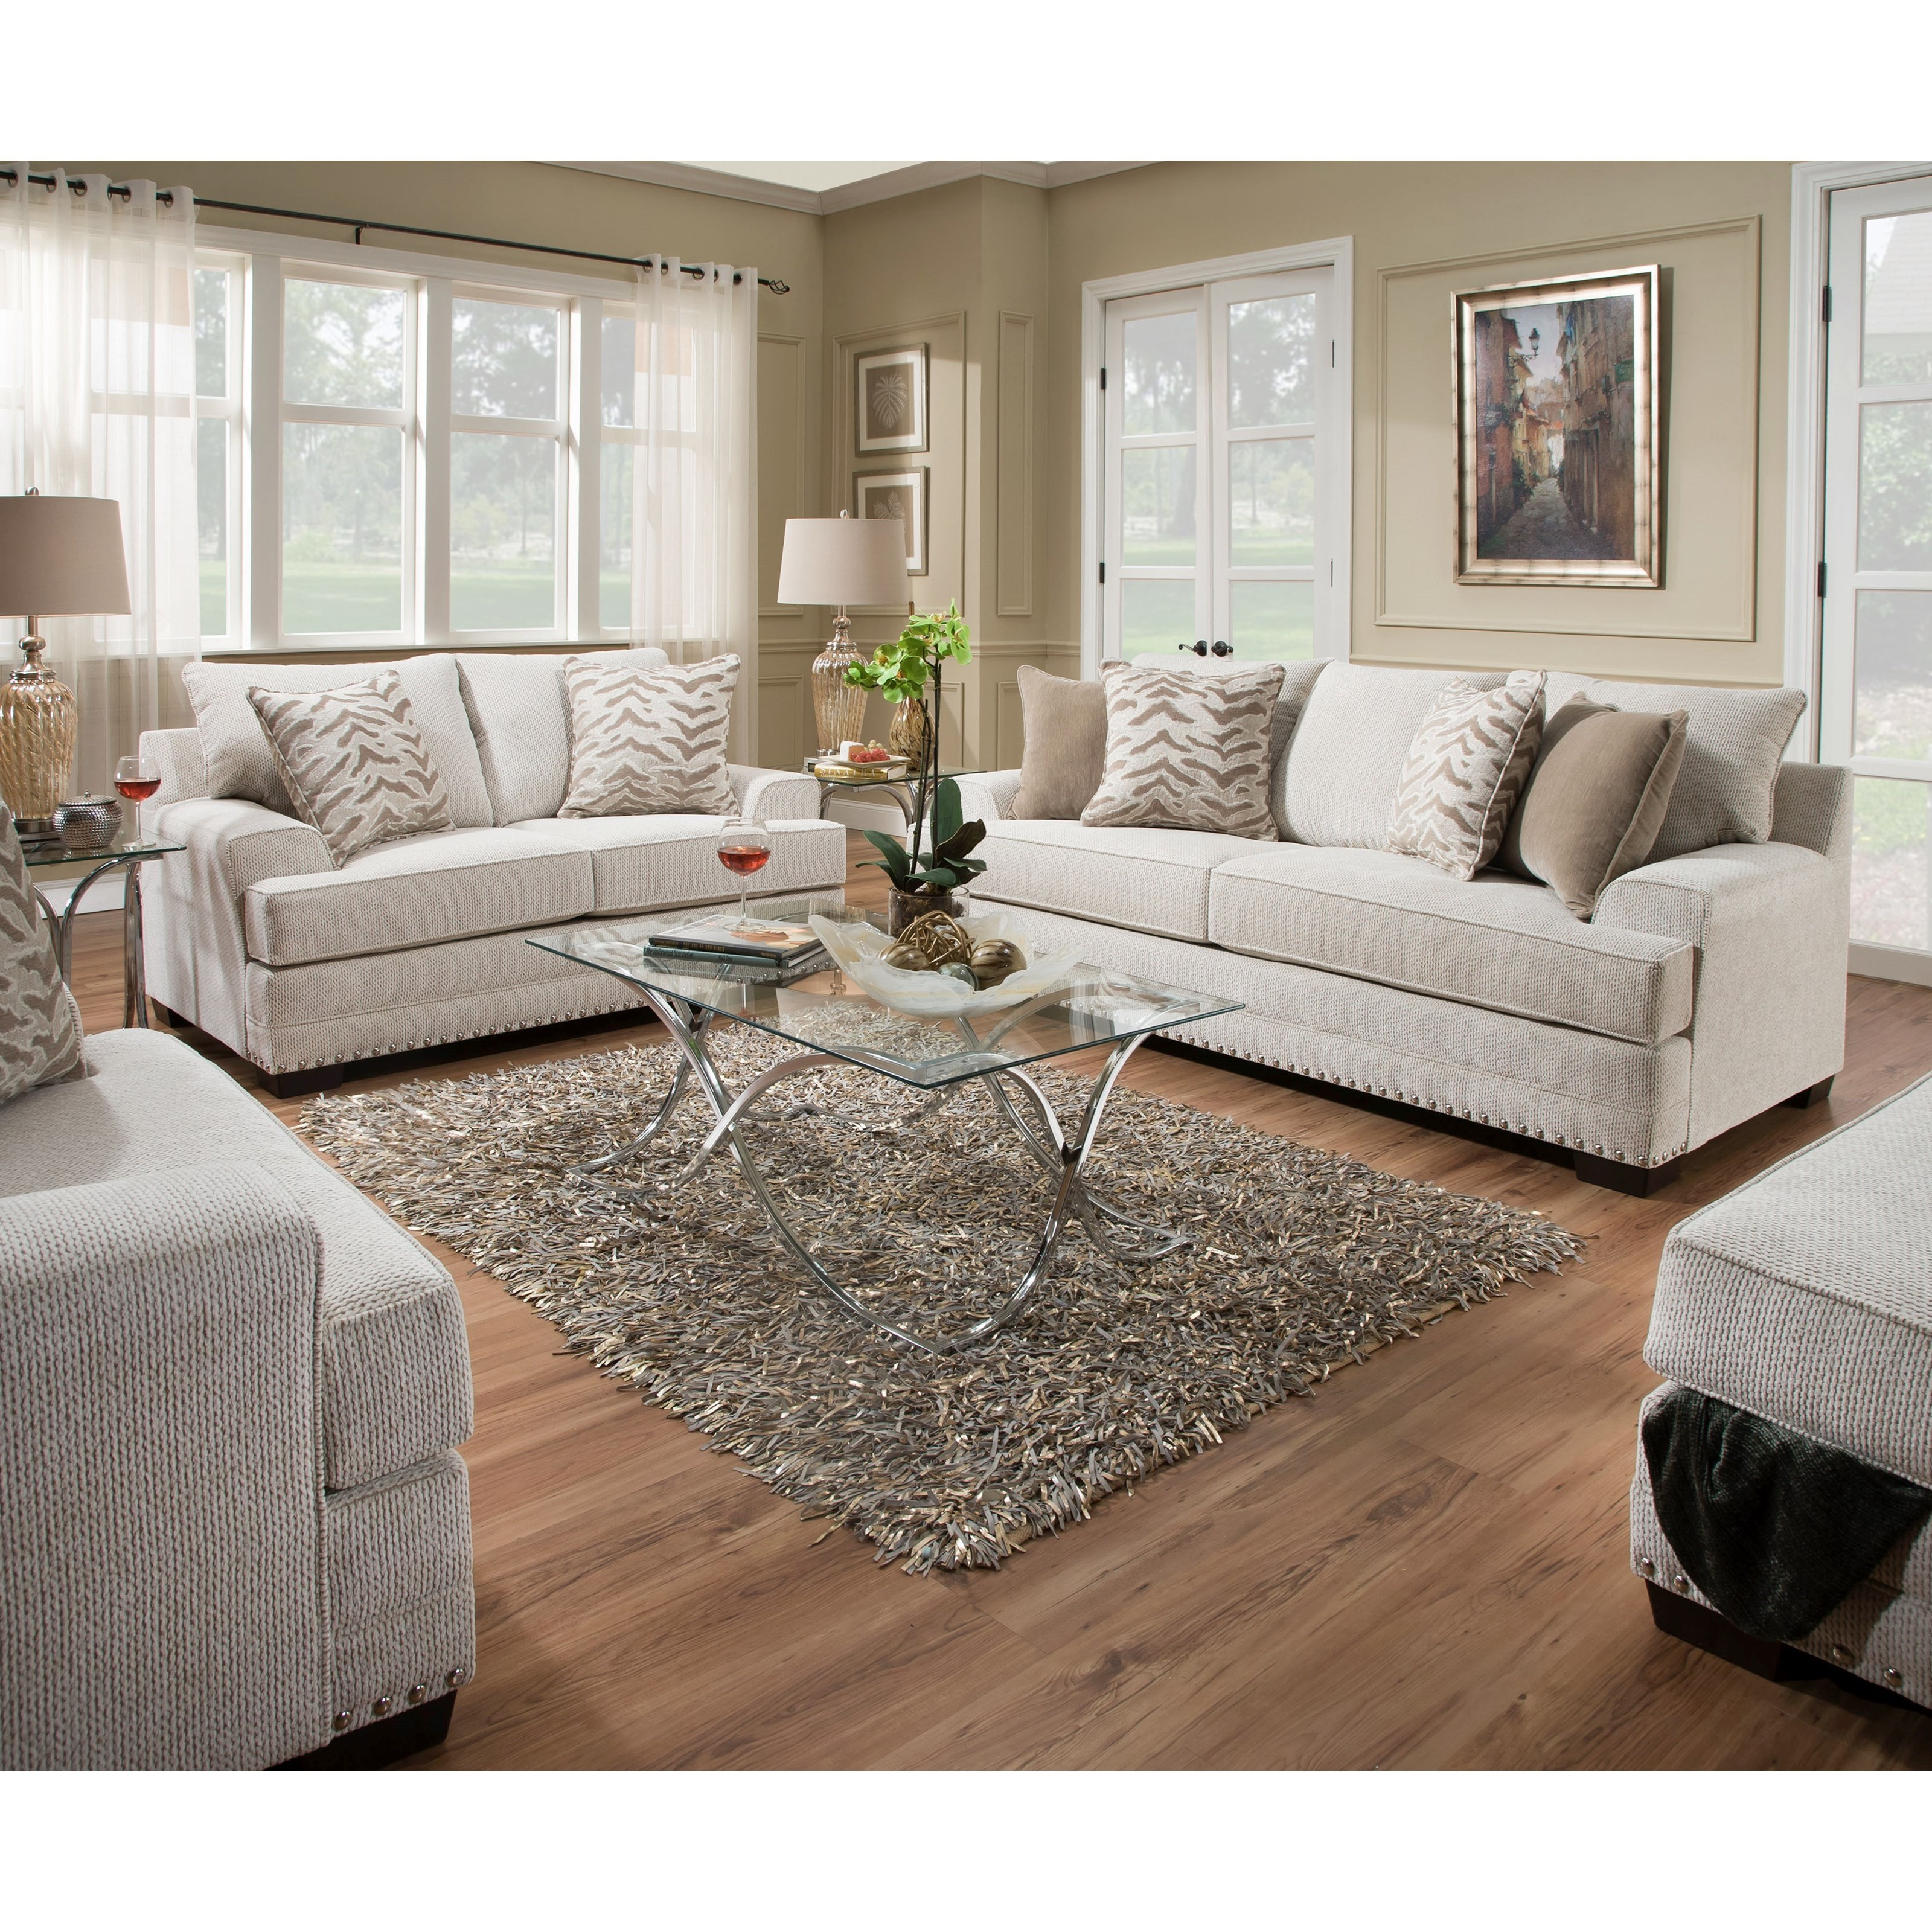 small living room set united furniture industries 6547br 6547brloveseat 12358